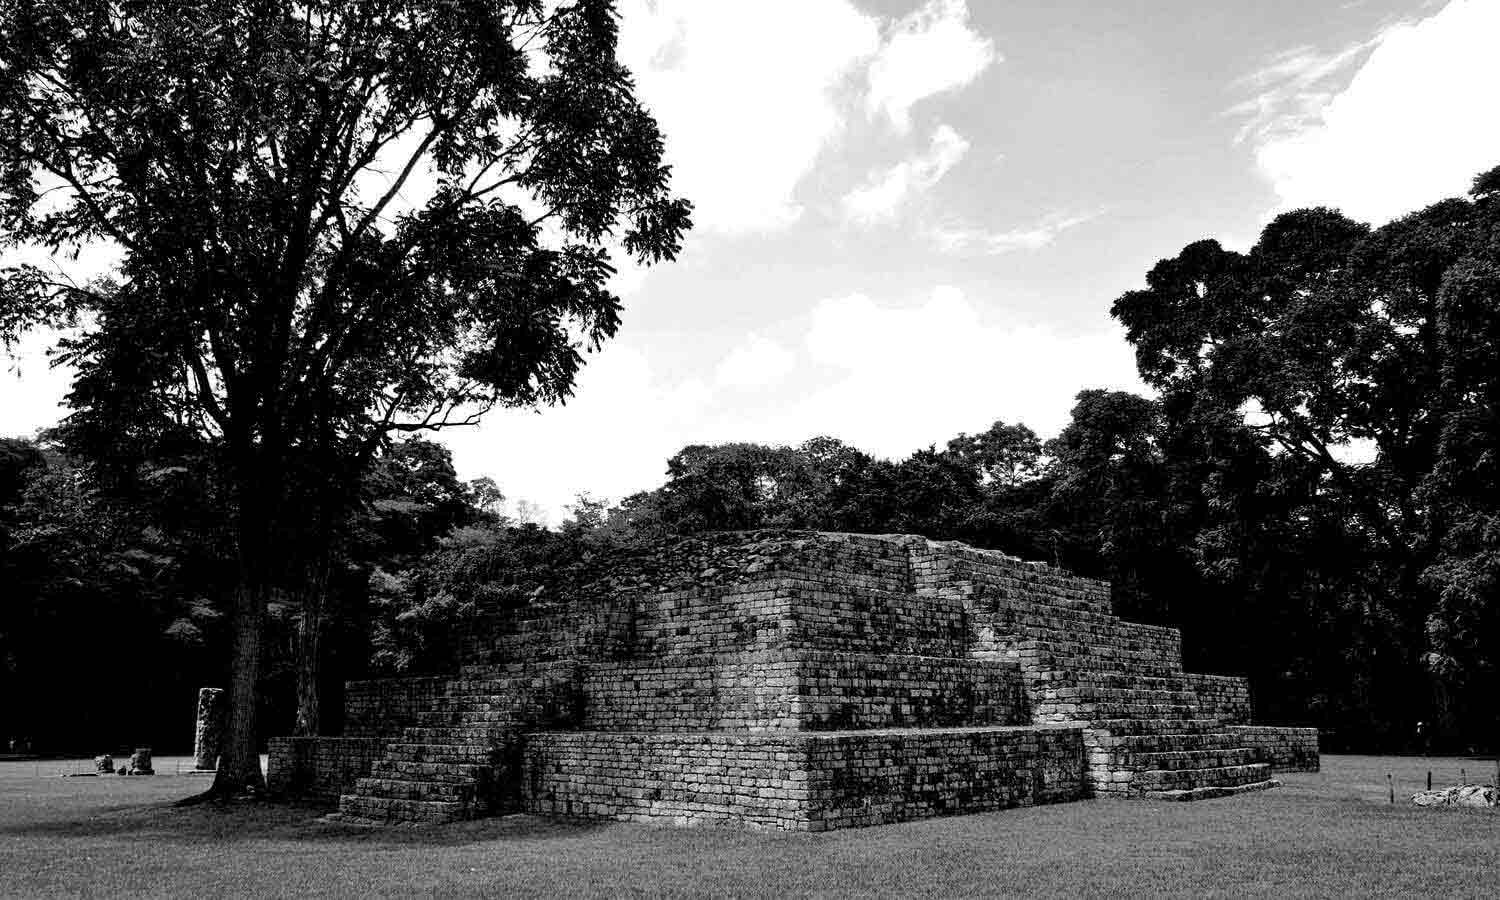 Ancient pyramid at pre-columbian city of Copan